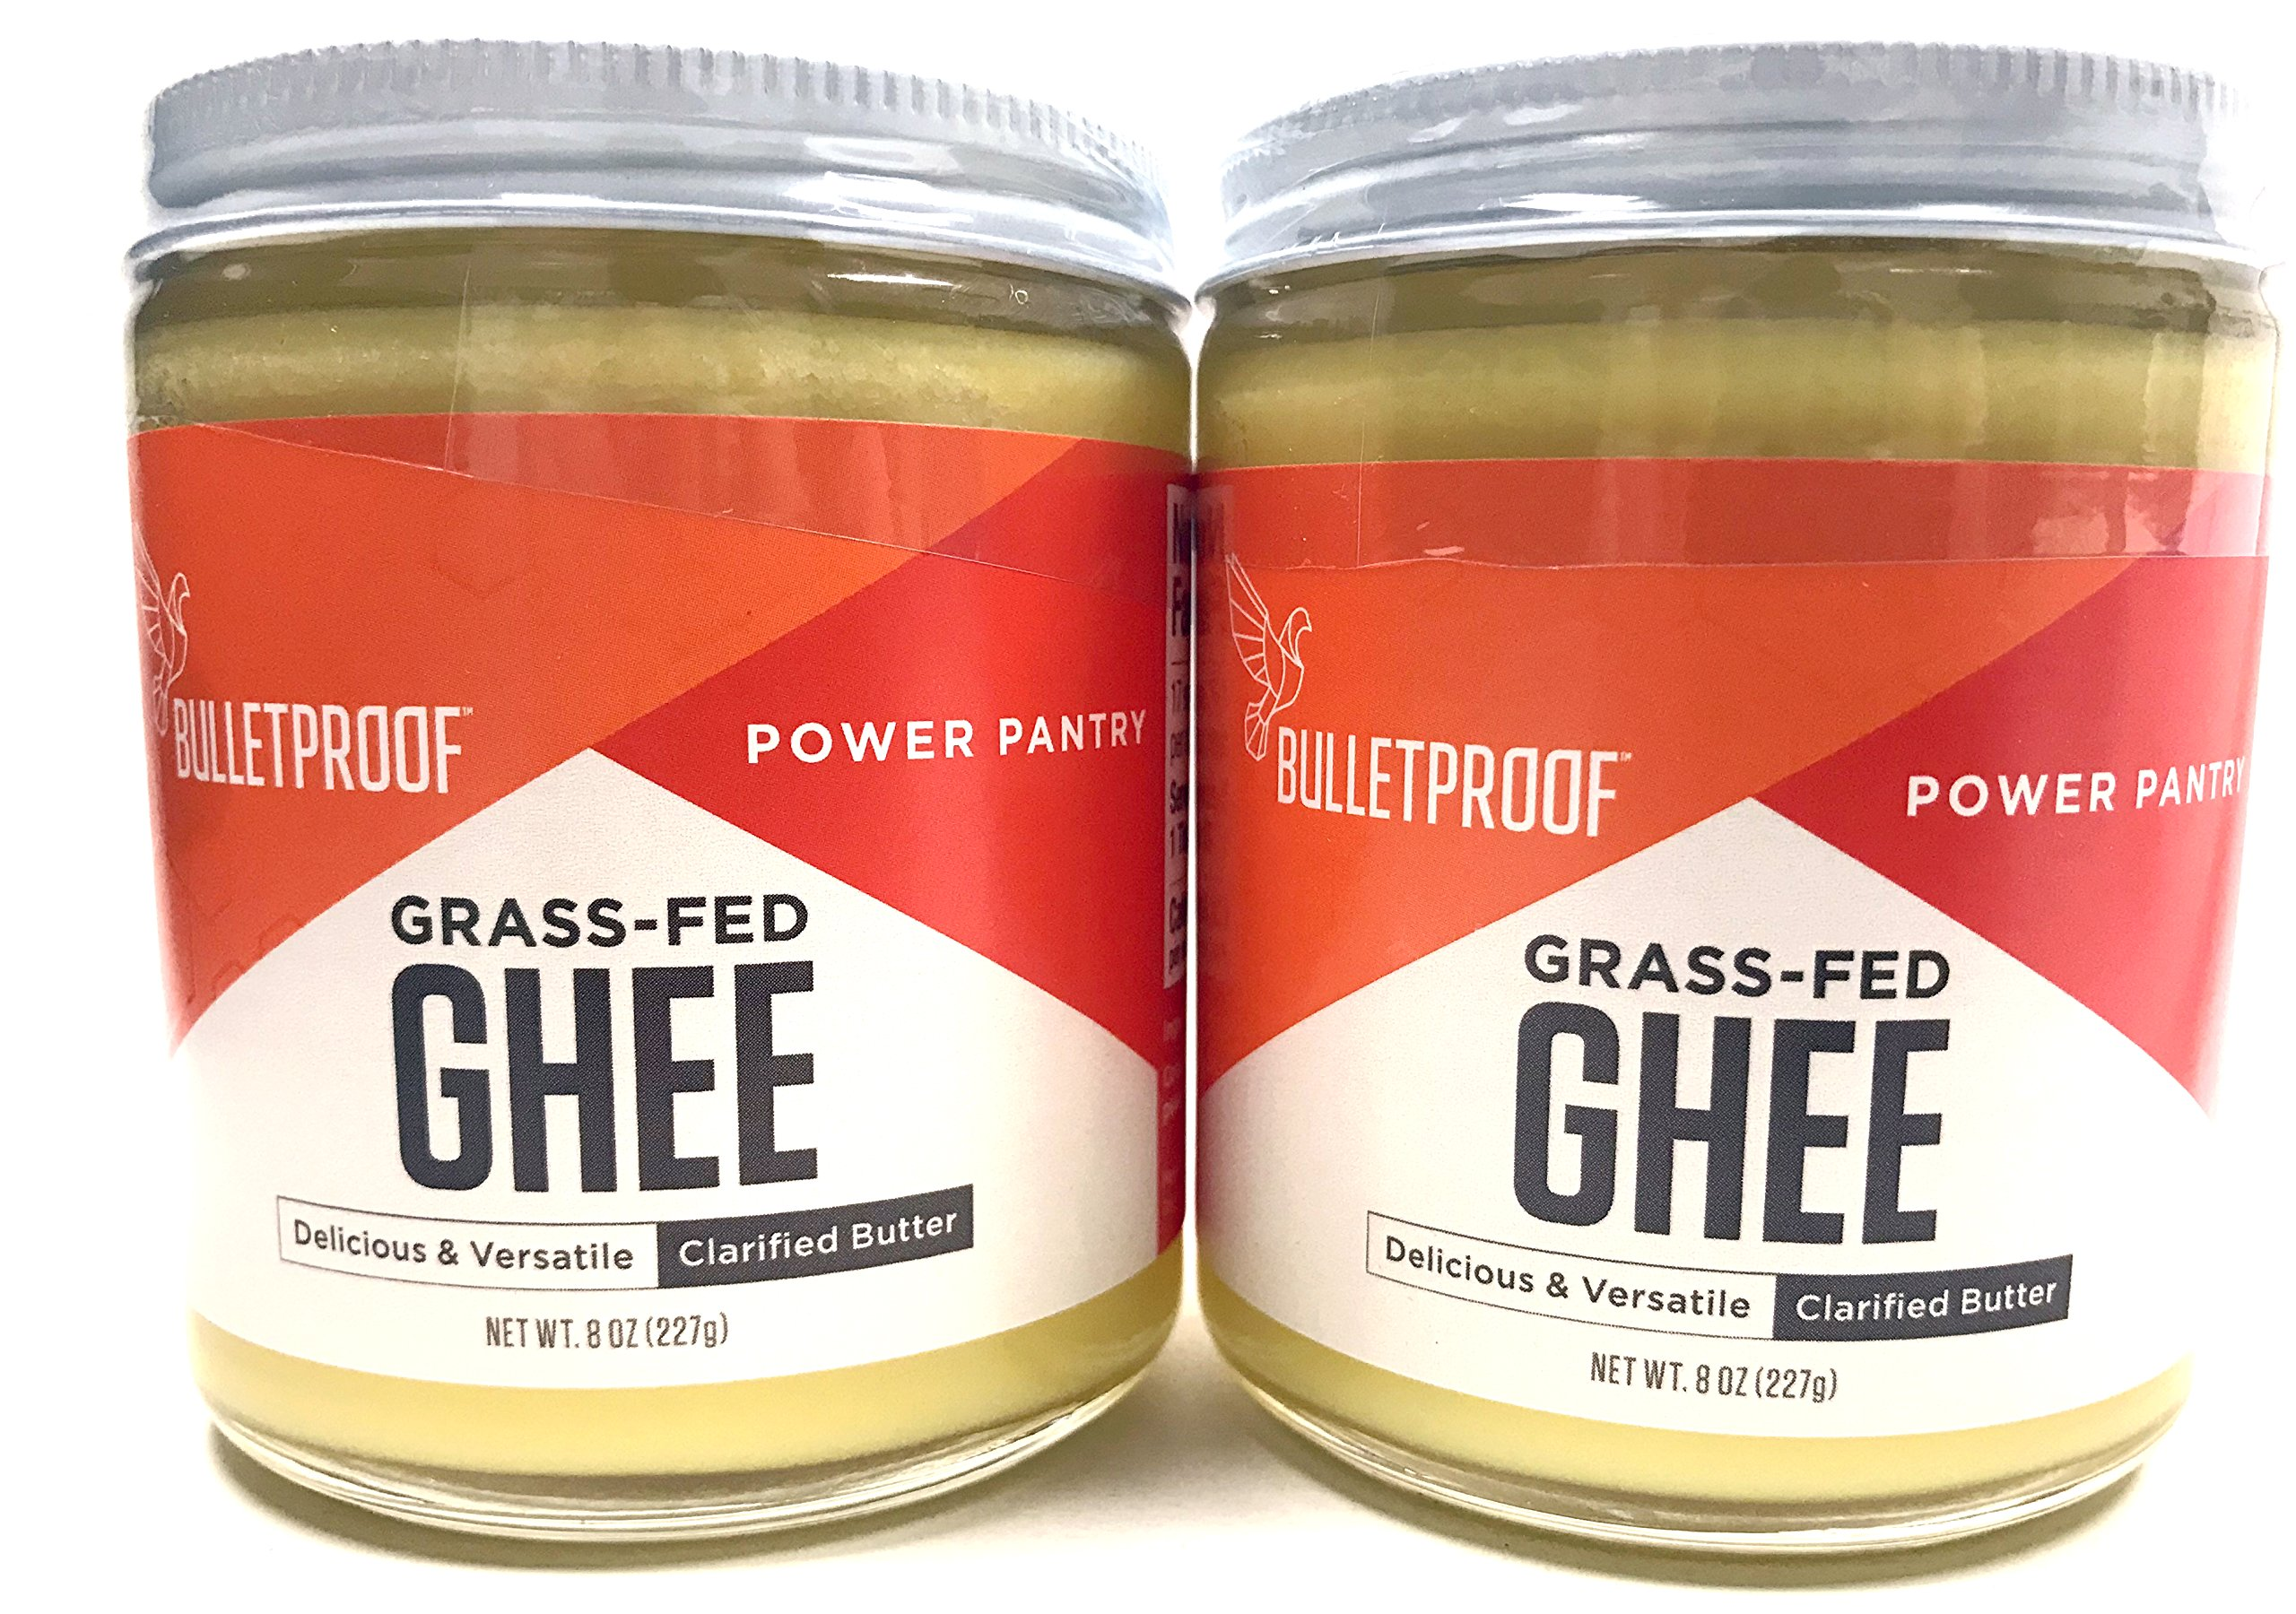 Bulletproof Grass-Fed Ghee, Quality Fat from Pasture-Raised Cows 8 oz | 2 Packs